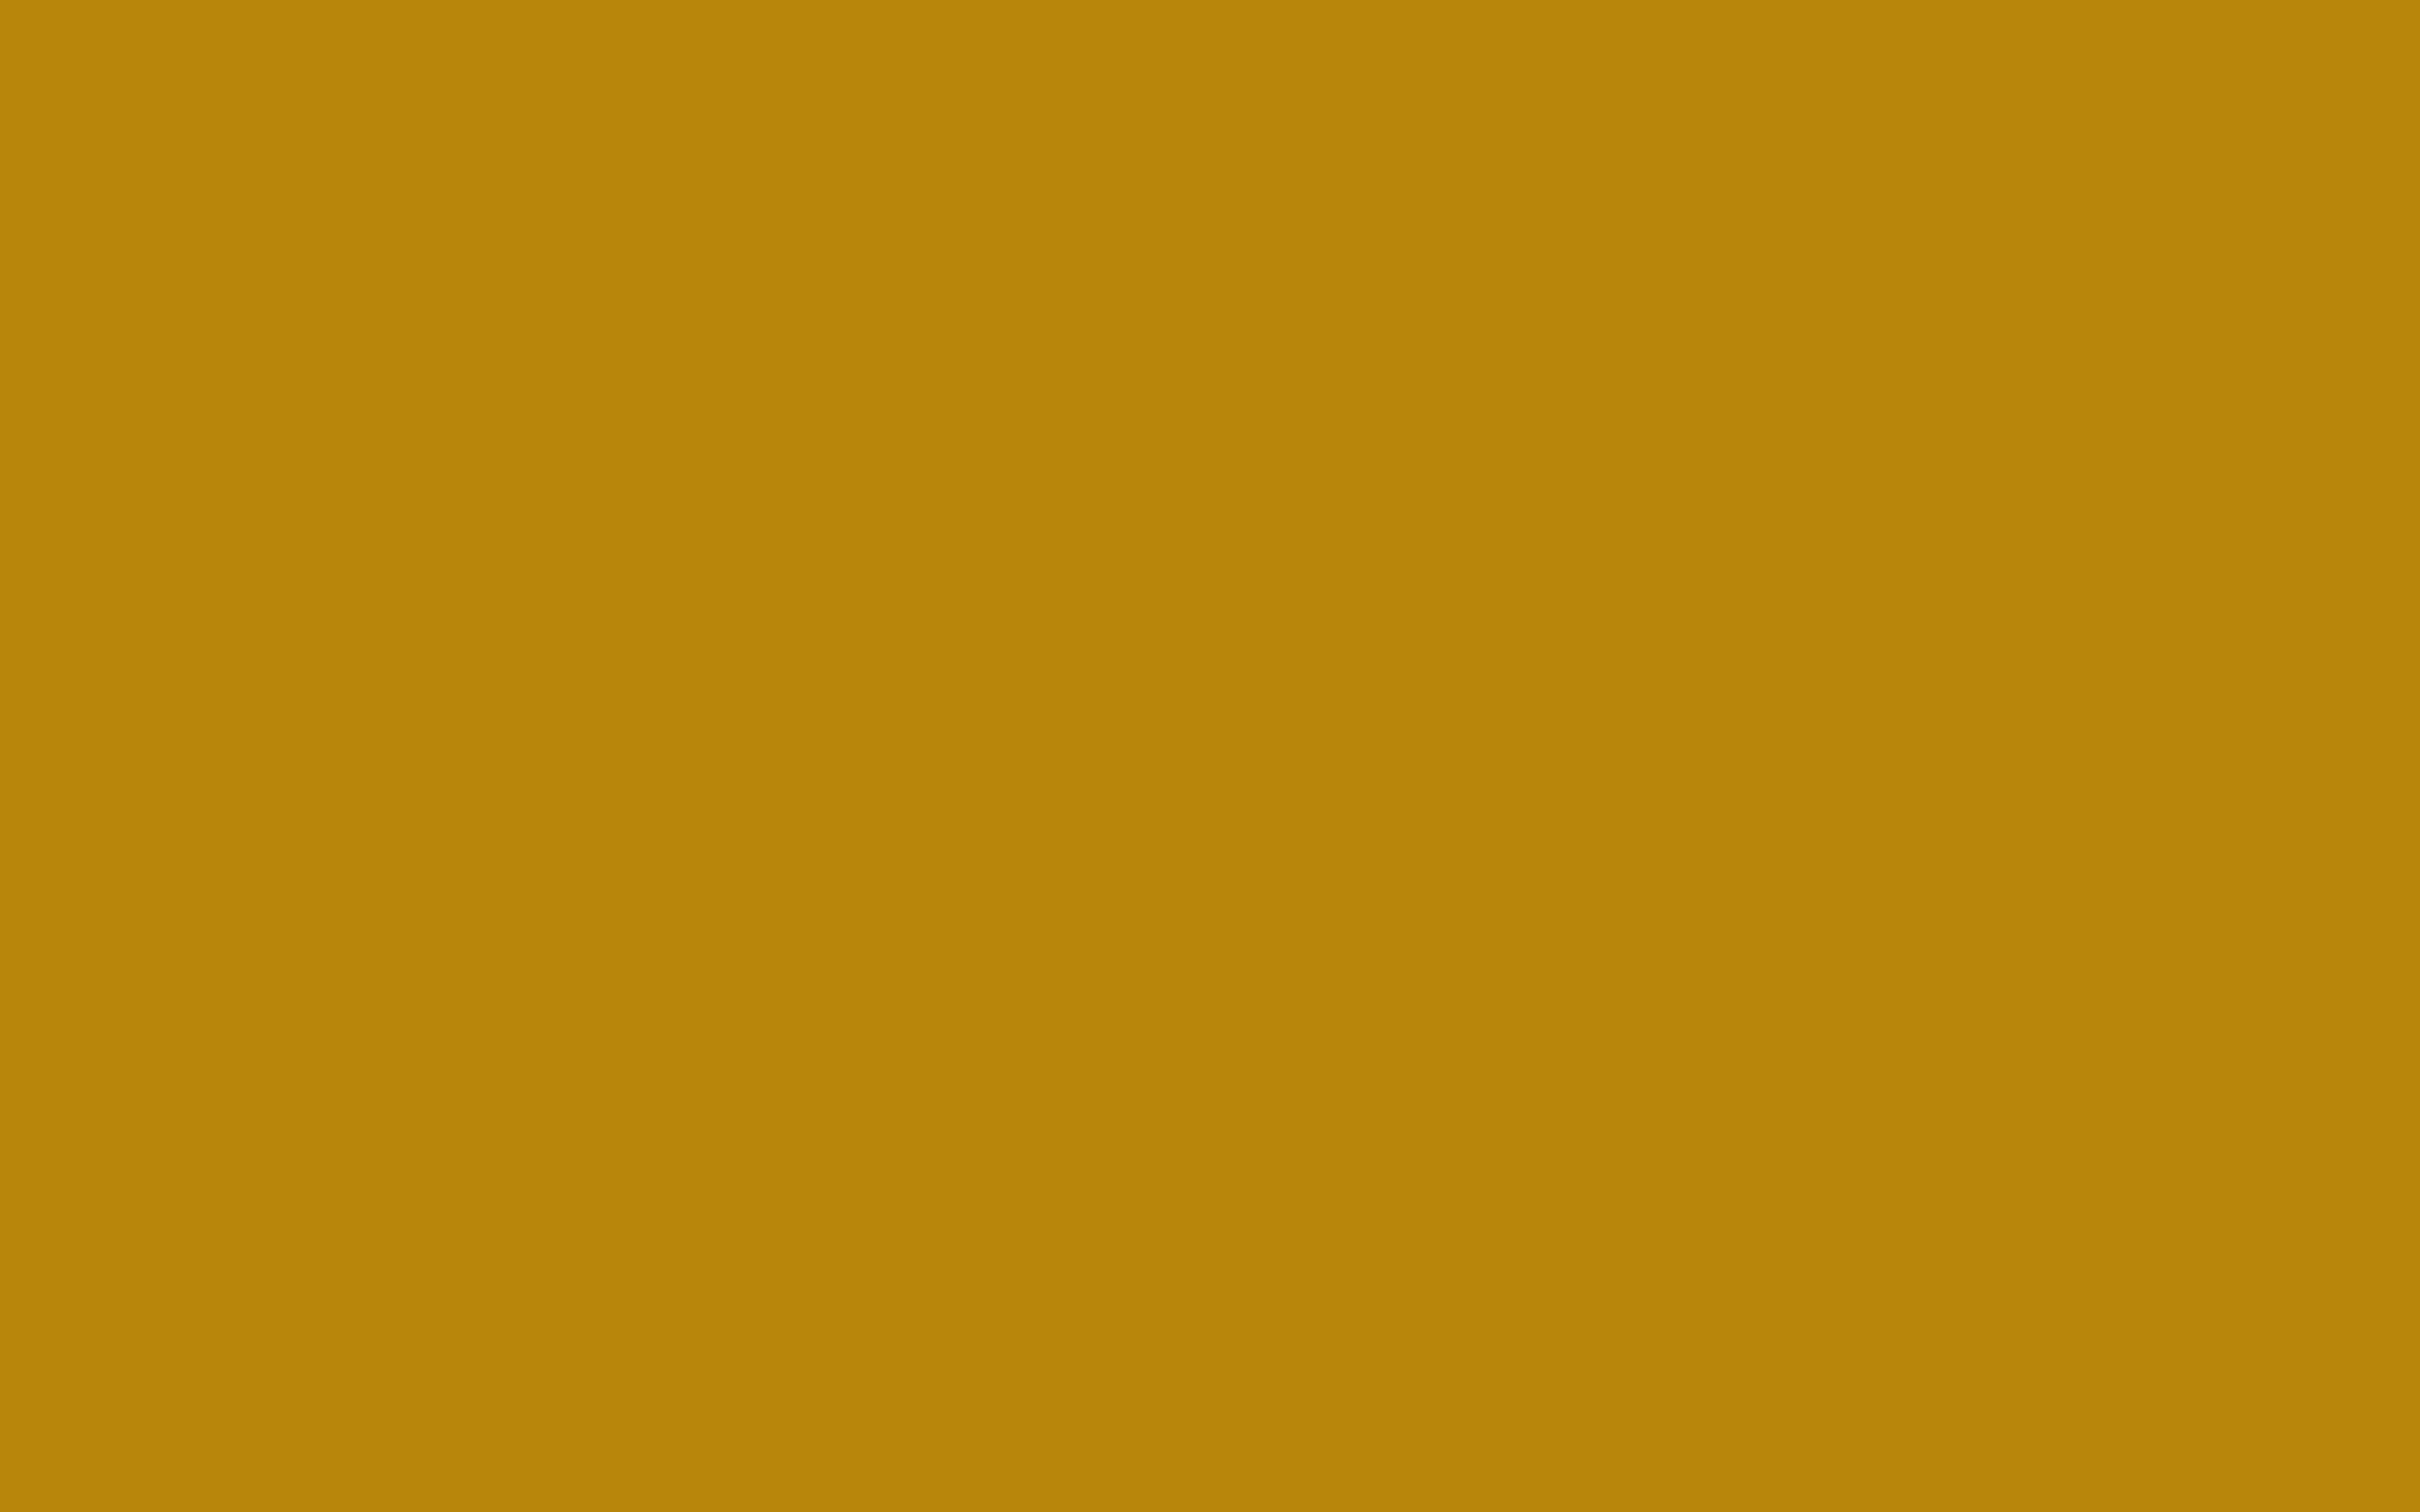 2560x1600 Dark Goldenrod Solid Color Background